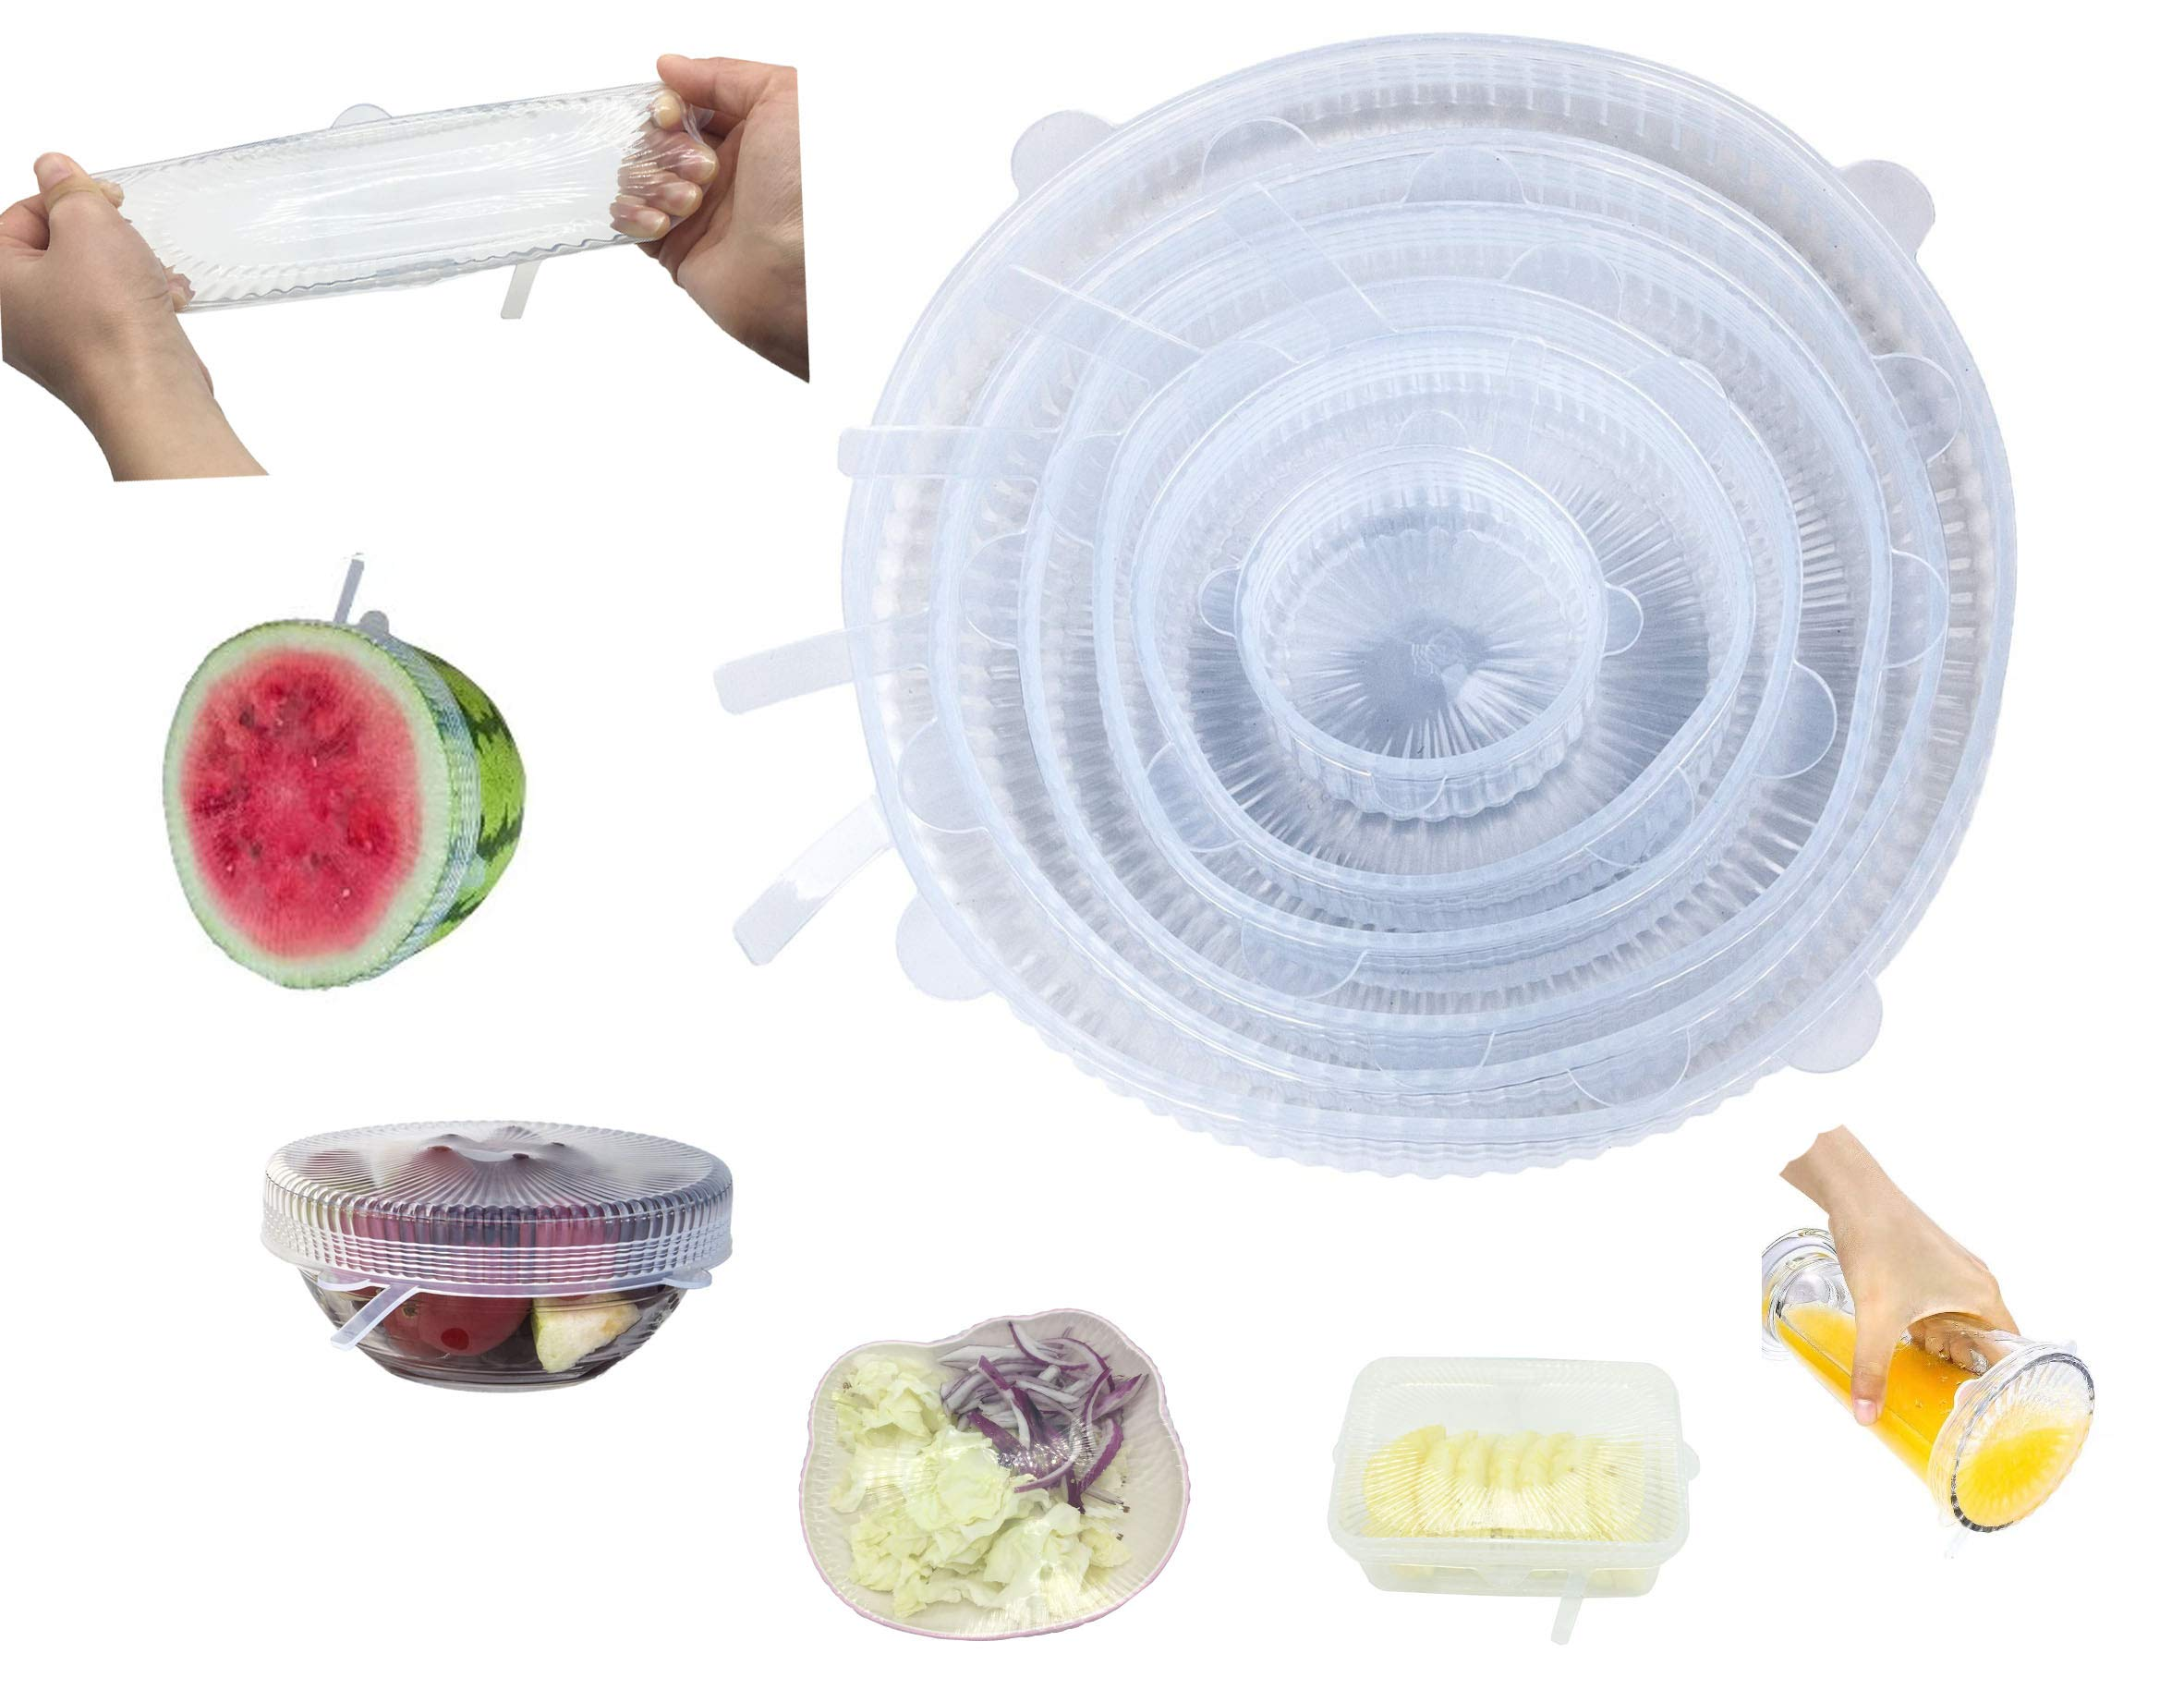 Silicone stretch lids, 6 pack, Easy to stretch, Airtight Perfectly, Fits Various Sizes and shapes of Containers, Superior for Keeping Food Fresh